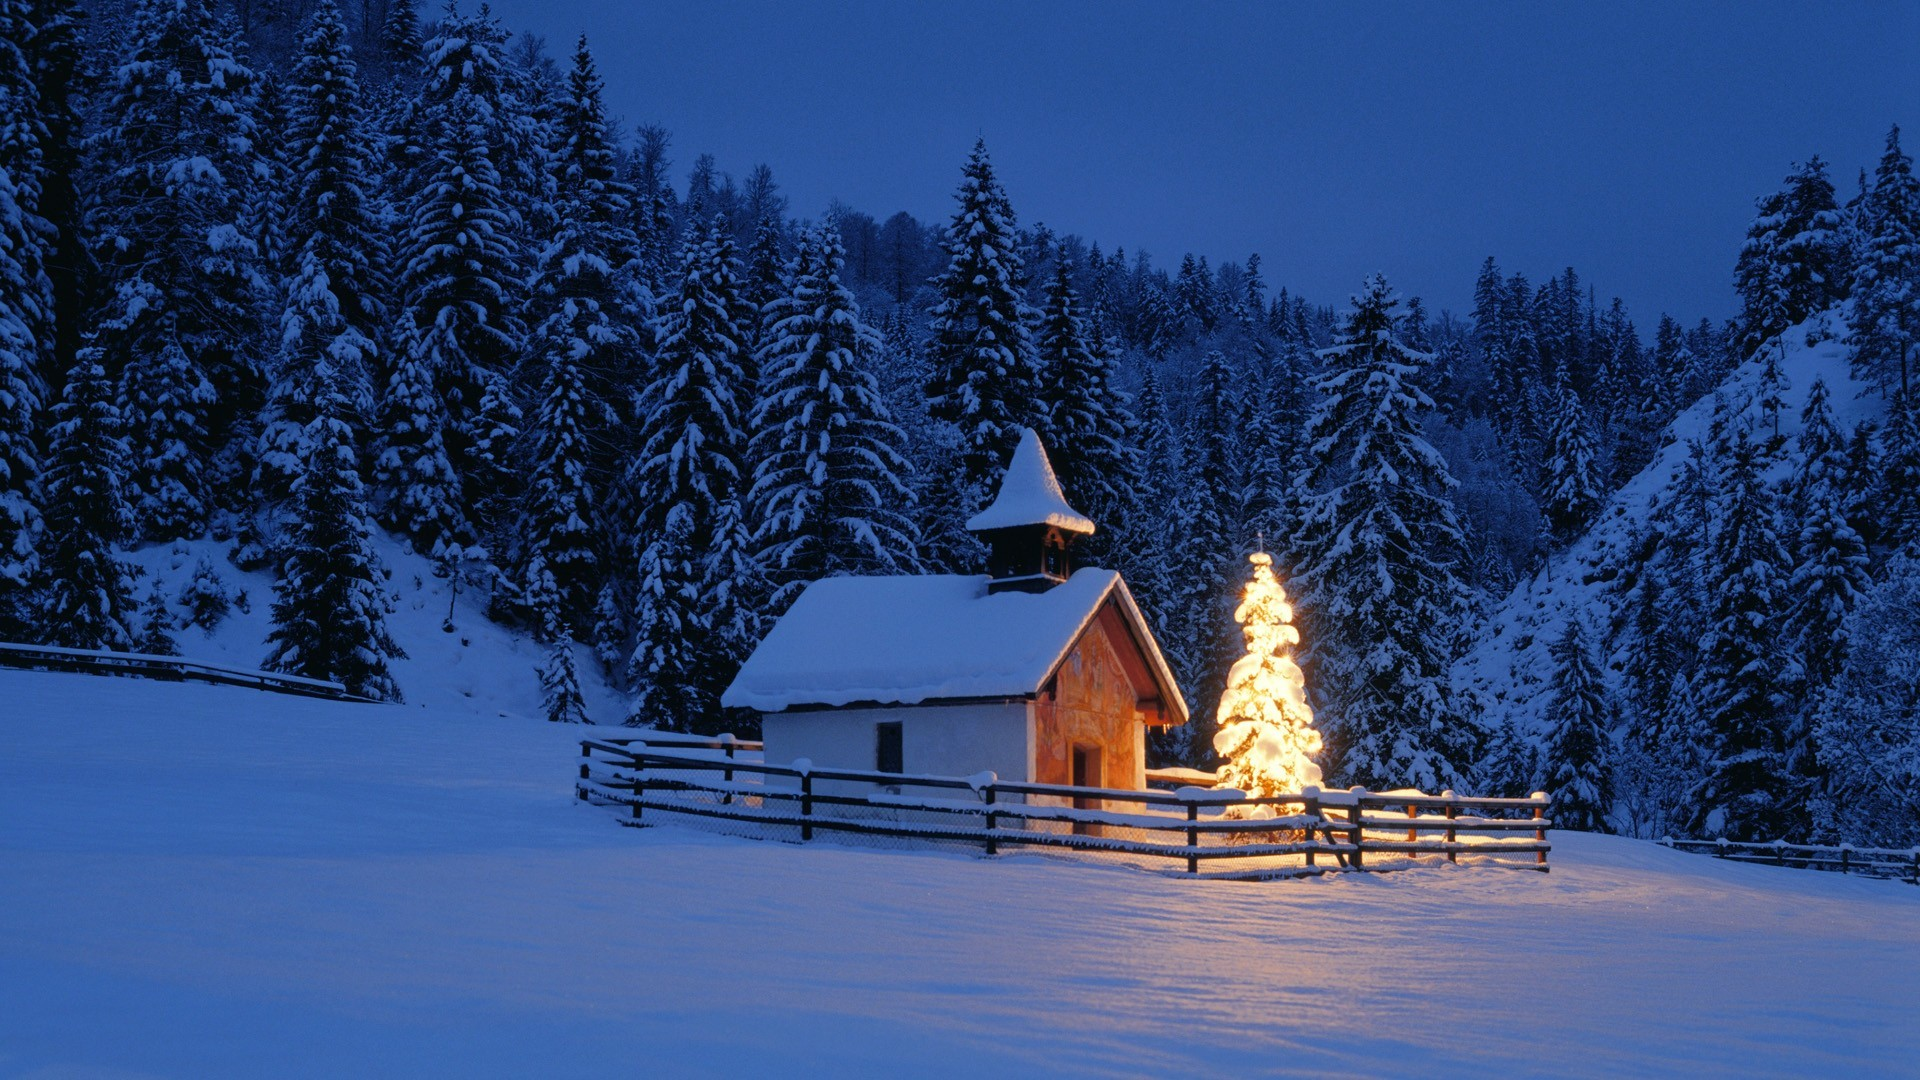 which is under the winter wallpapers category of free hd wallpapers .